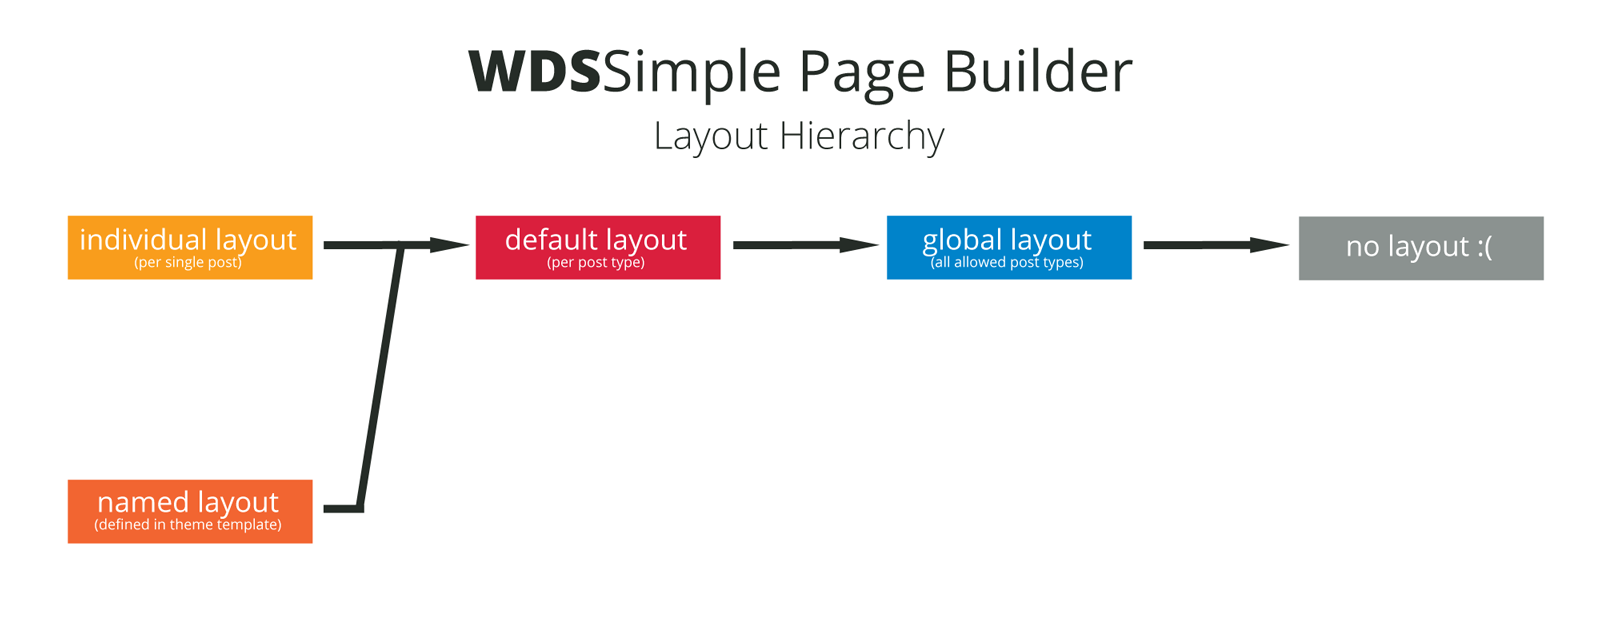 Layout hierarchy webdevstudioswds simple page builder wiki github page builder layout hierarchy ccuart Image collections